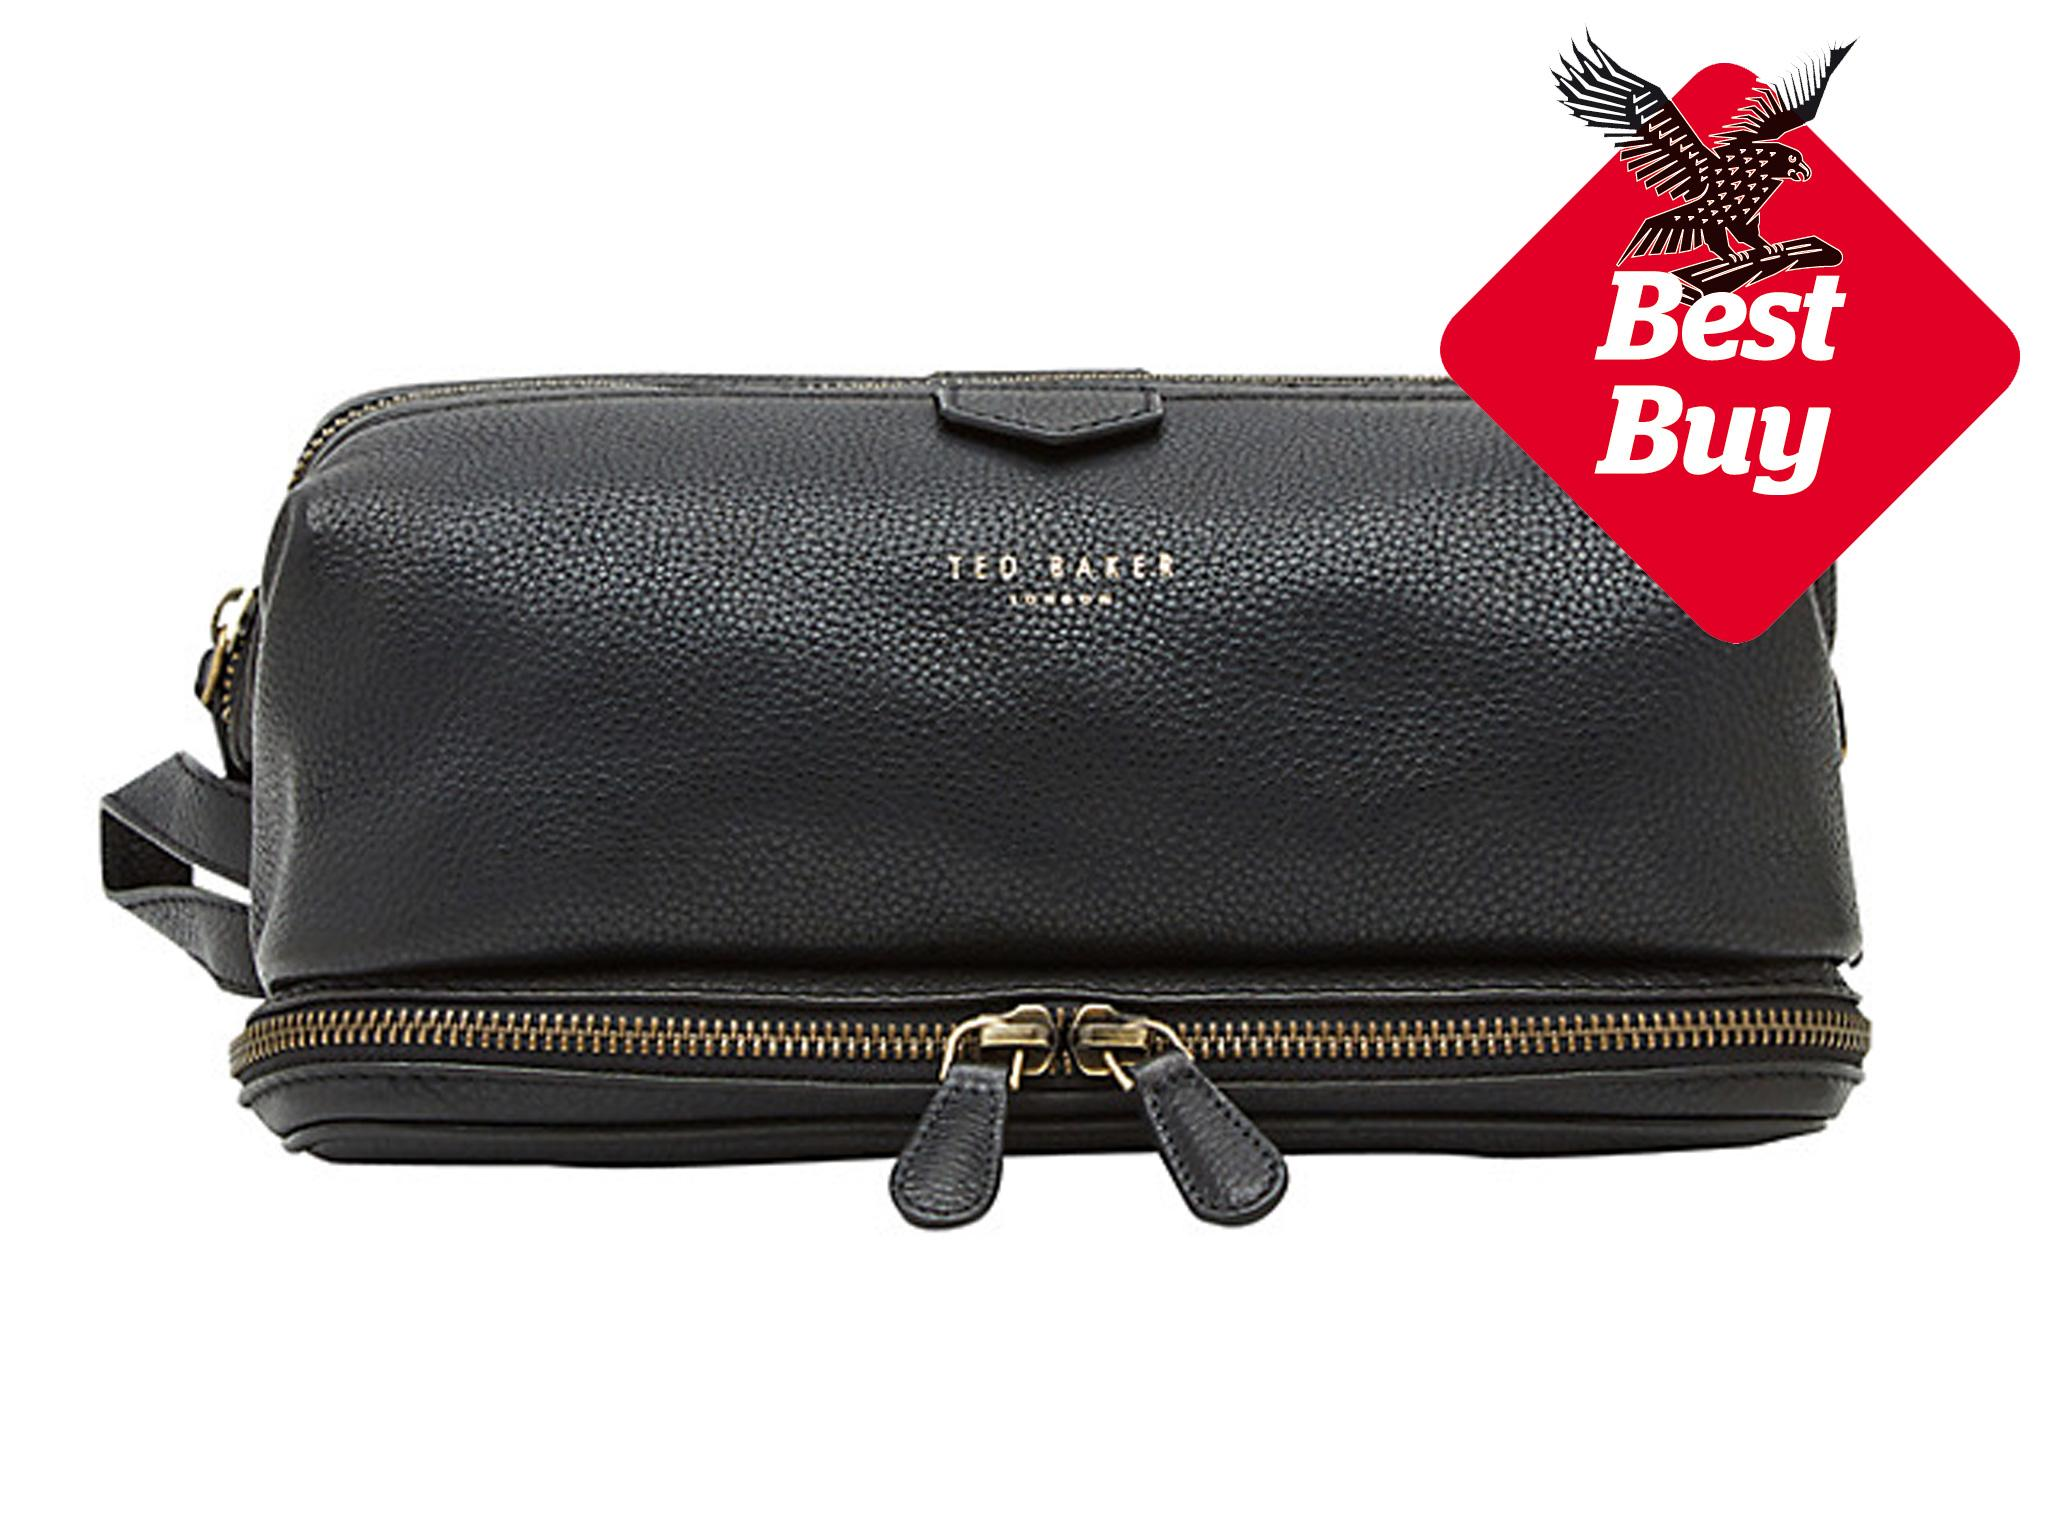 2f823a6f56 Ted Baker Lanclot Pebble Grain Leather Wash Bag  £65